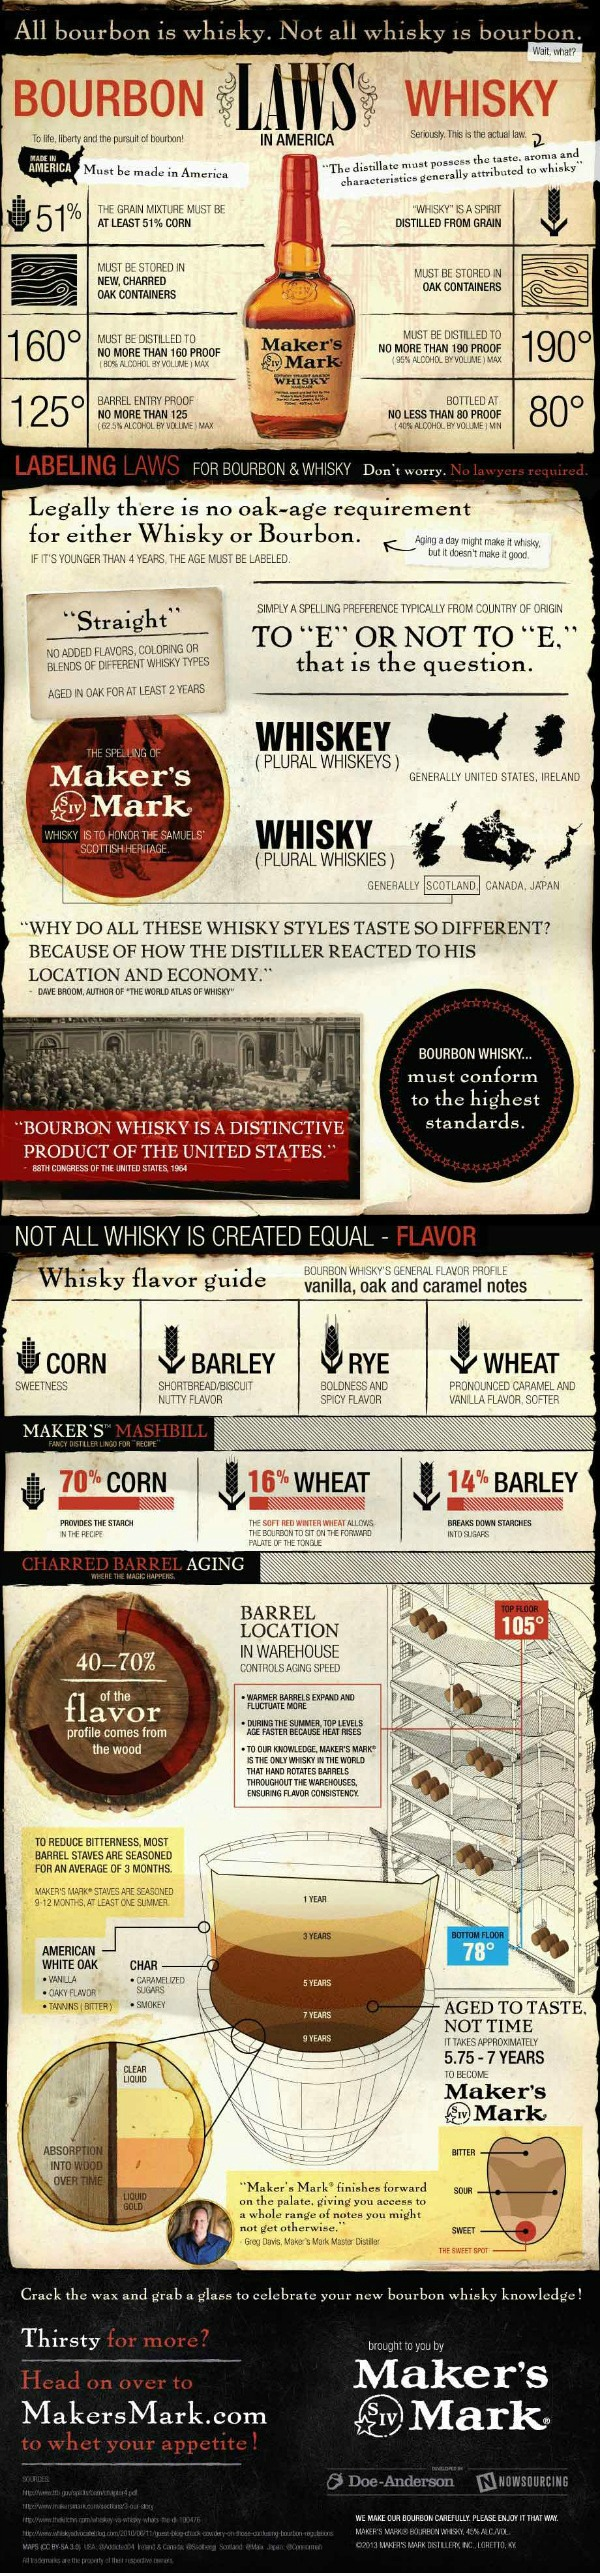 Everything You Need to Know About Bourbon vs Whisky ...